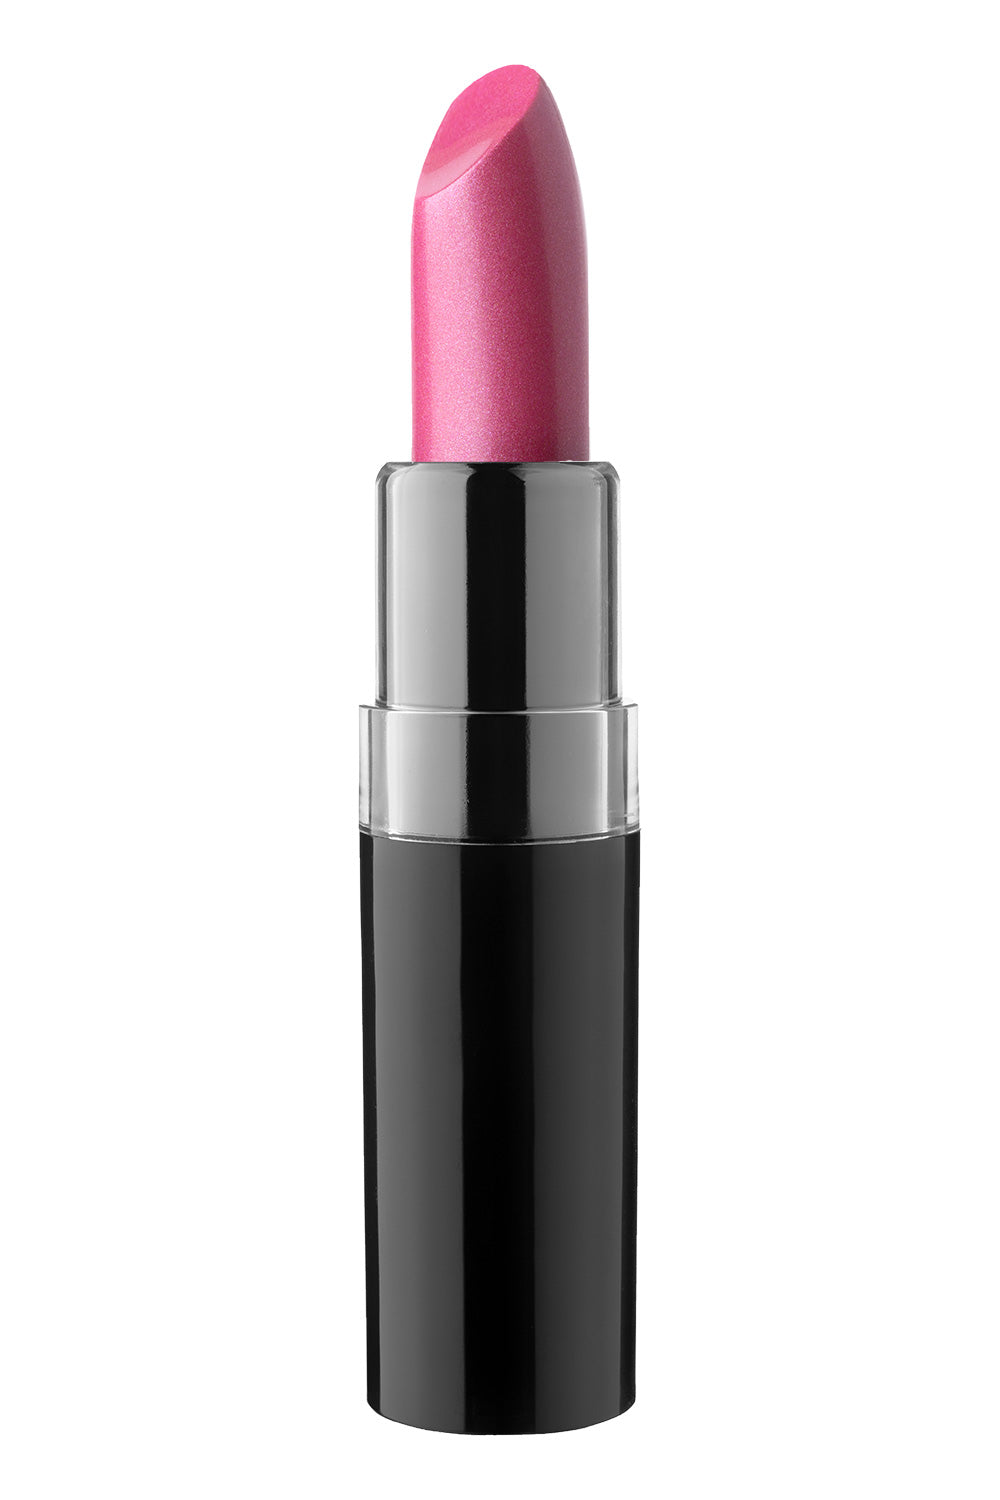 You Wanna? - Type 1 Lipstick